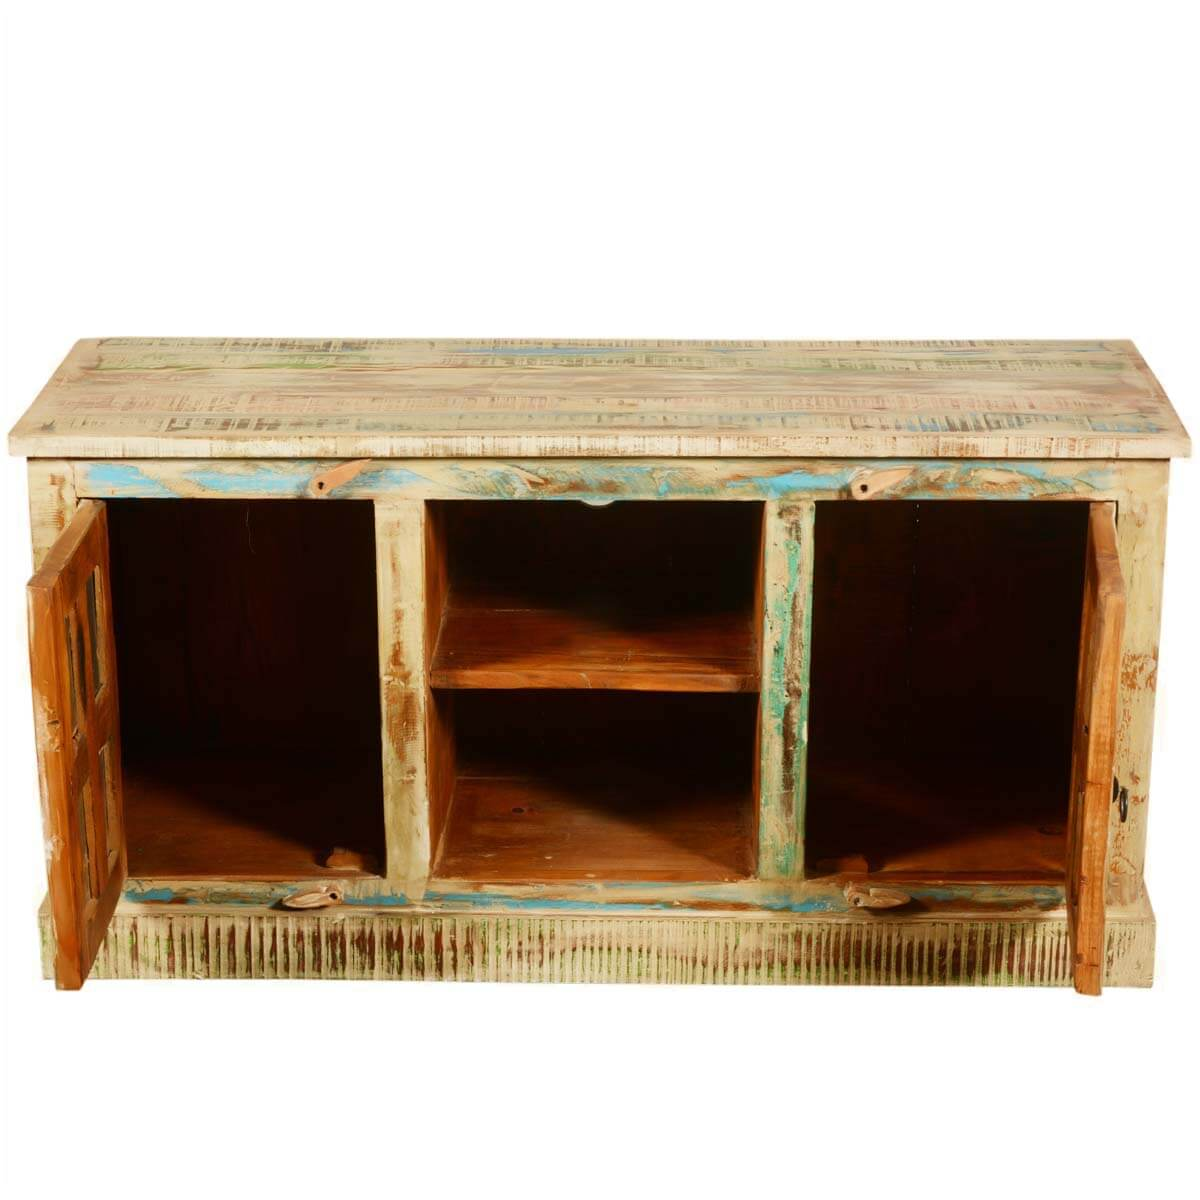 Rainbow Windows Rustic Reclaimed Wood 47 Tv Stand Media